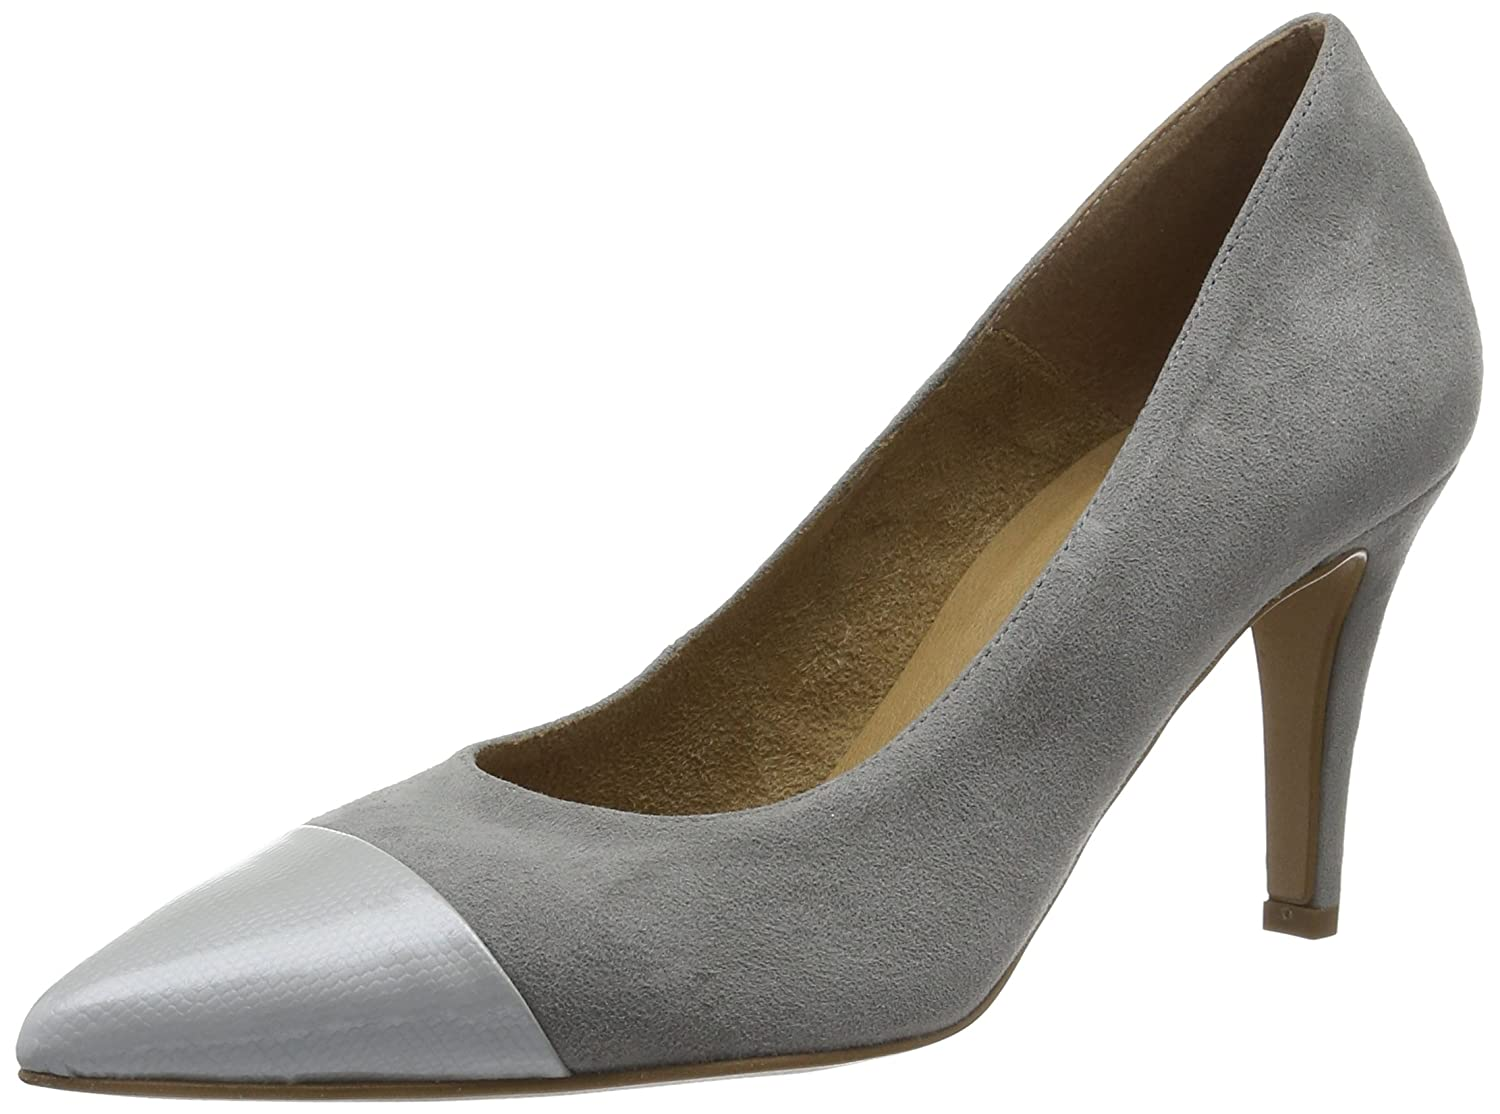 Grau (grau 200) Tamaris Damen 22427 Pumps